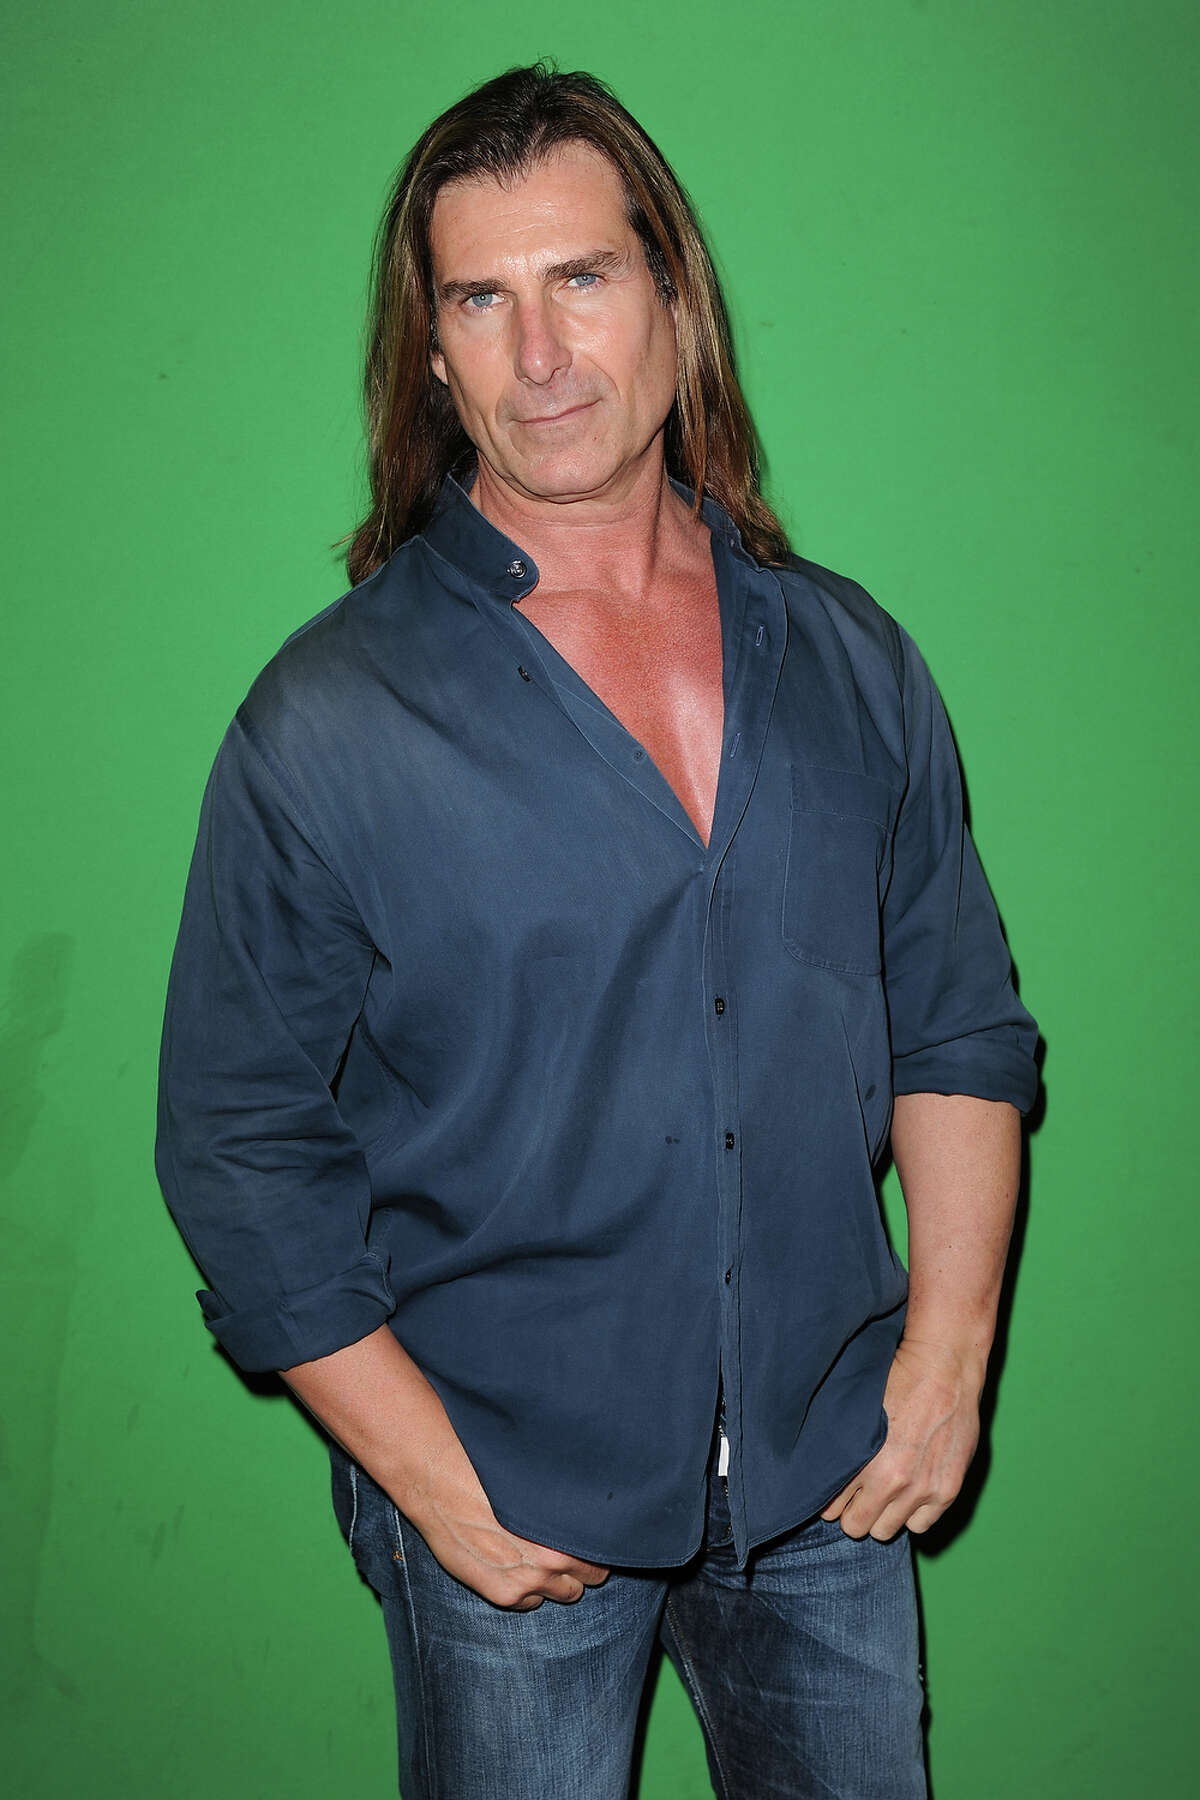 Congrats to Fabio Lanzoni who became an official United States citizen today. To honor his achievement, click through the gallery to see his most popular romance covers over the years.